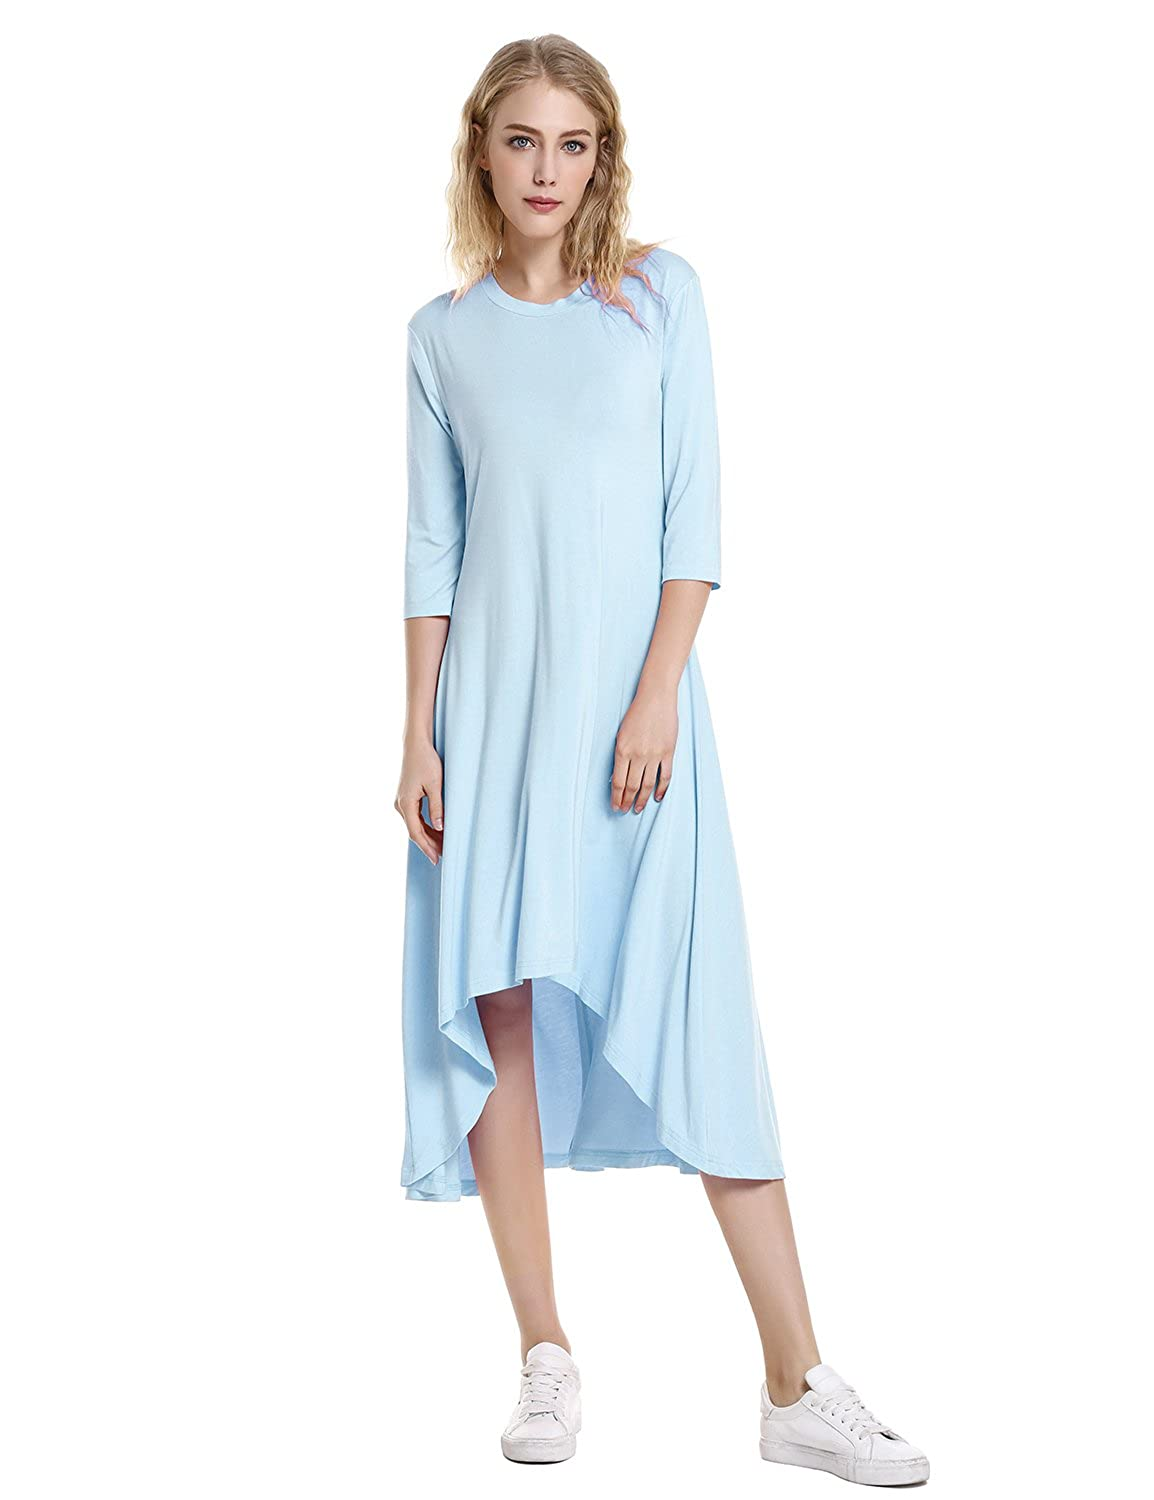 a4139c6ba06 STYLE Asymmetrical Dress 3 4 Sleeve Dresses for Women Casual Round Neck High  Low Hem at Amazon Women s Clothing store